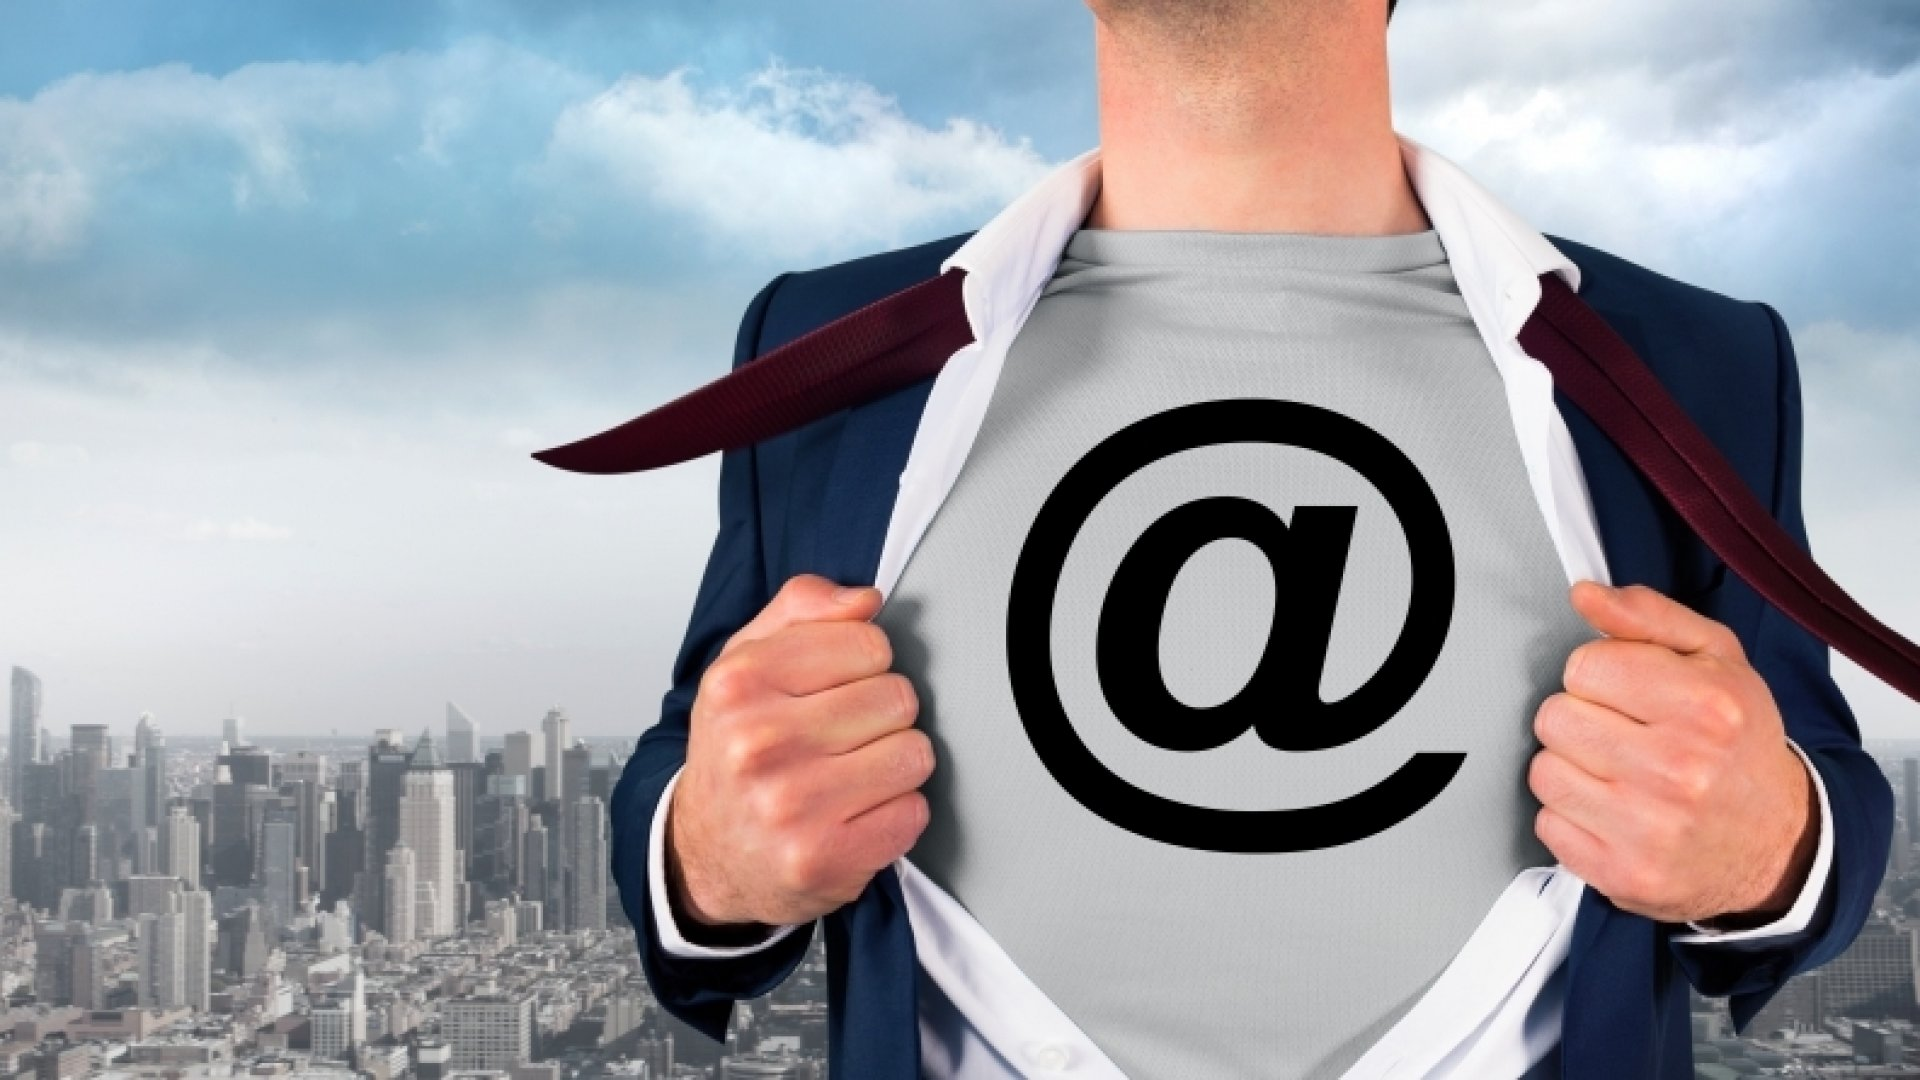 How to Get 2,400 Percent More Customers by Email